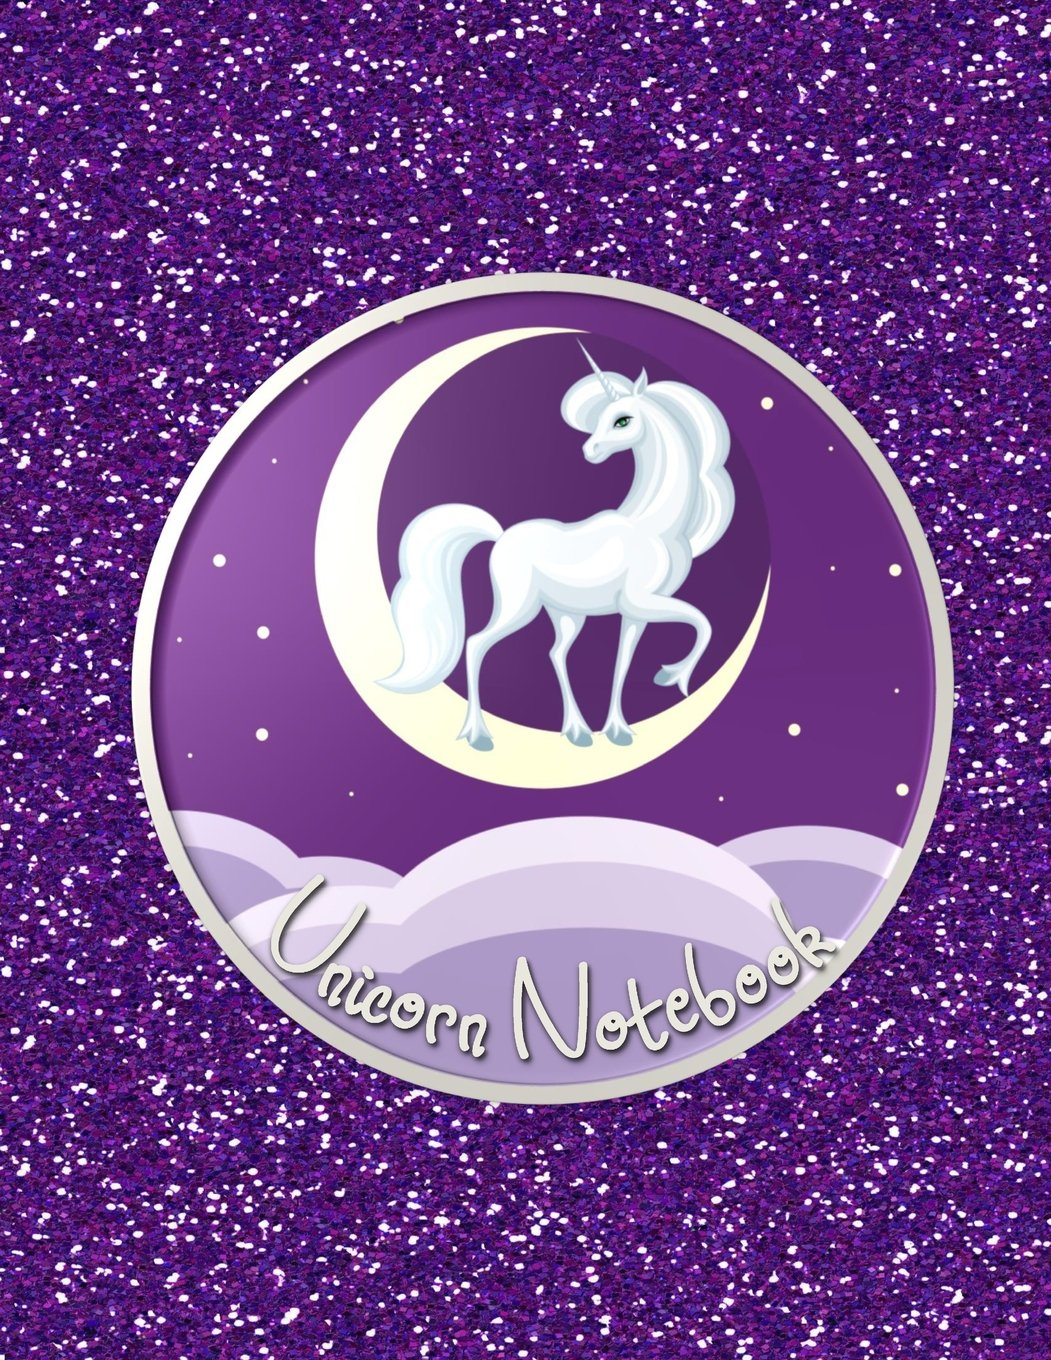 Download Unicorn Notebook: Fun Faux Sparkle Cover - Lined and Sketch Journal Pages For Unicorn Lovers  - Composition Notebook - Unicorn Moon Purple Cover PDF